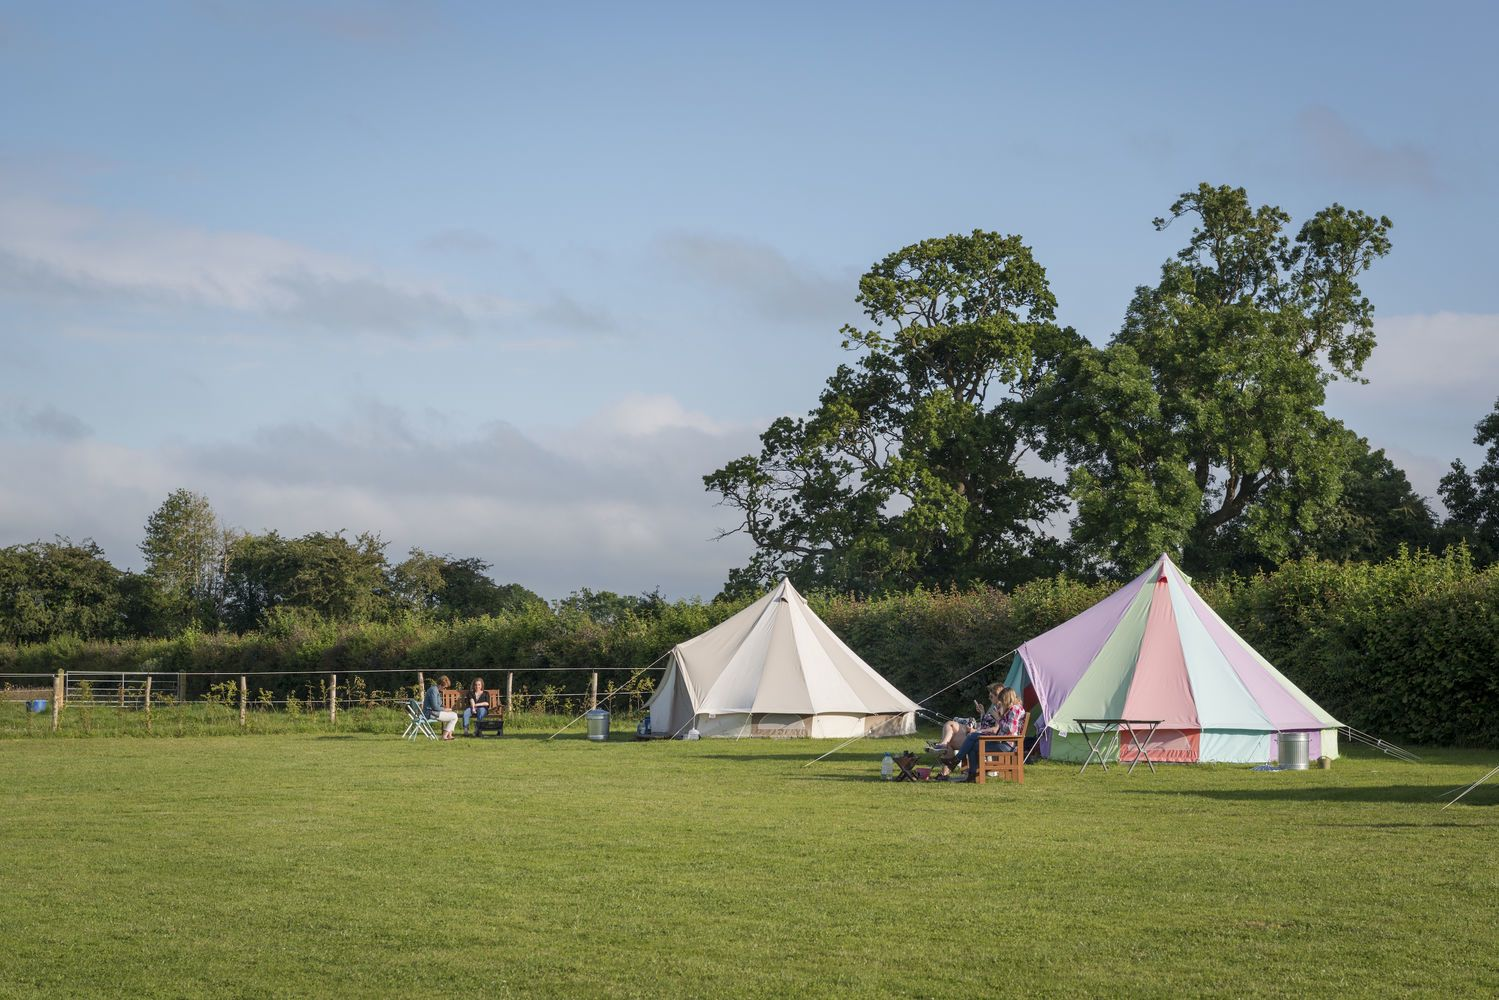 Campsites in Wiltshire